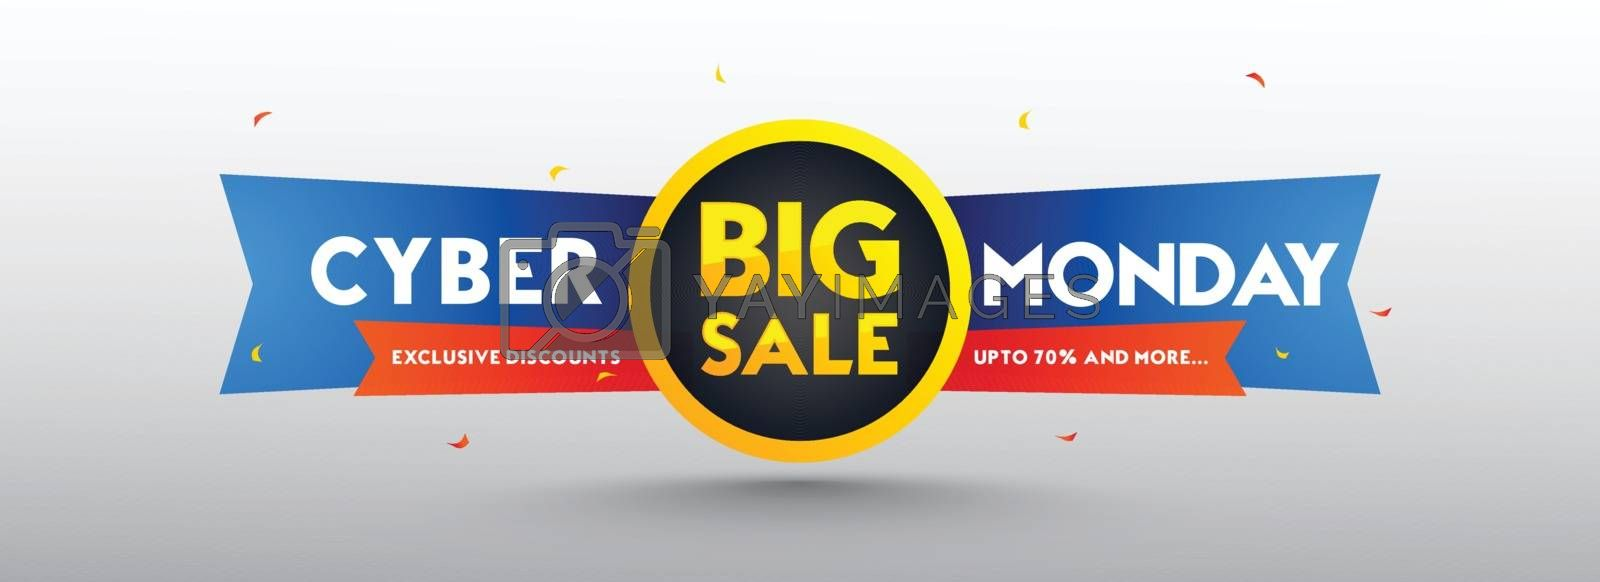 Big Sale, advertising banner design up to 70% discount offer, sale tag on white background. Social media header or poster.